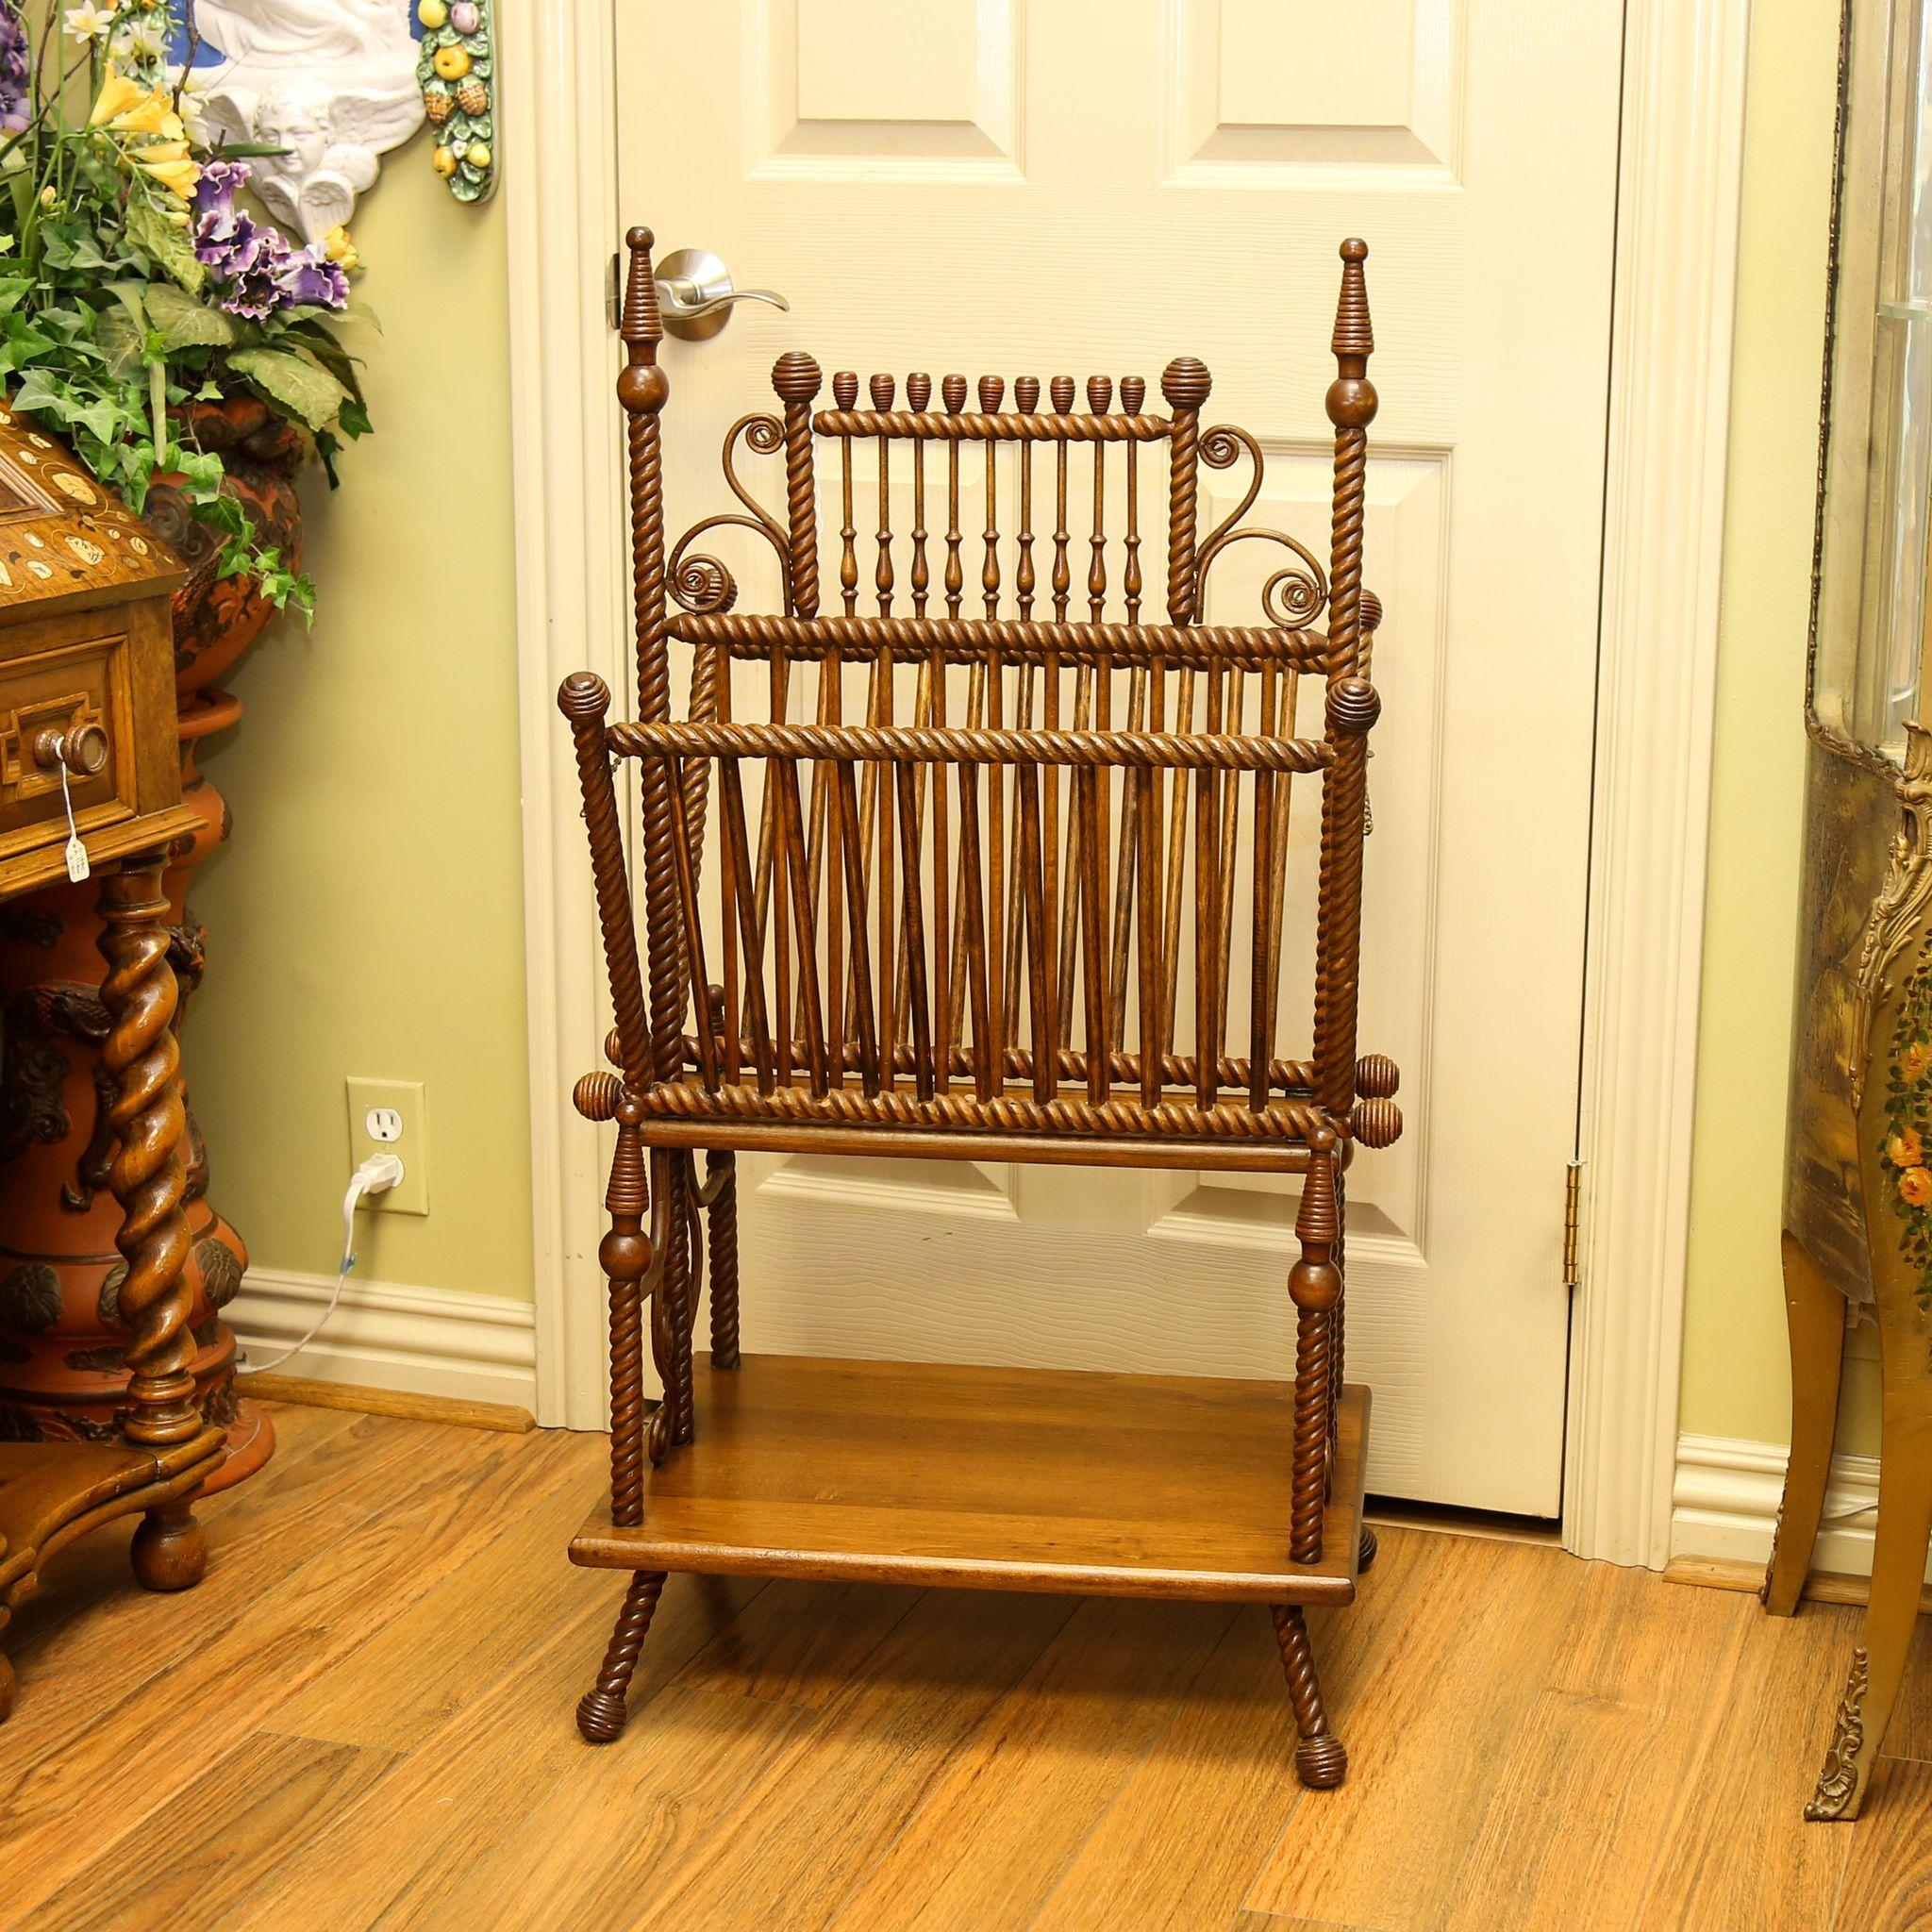 Circa 1880 Victorian Walnut & Wicker Ornate Magazine Stand